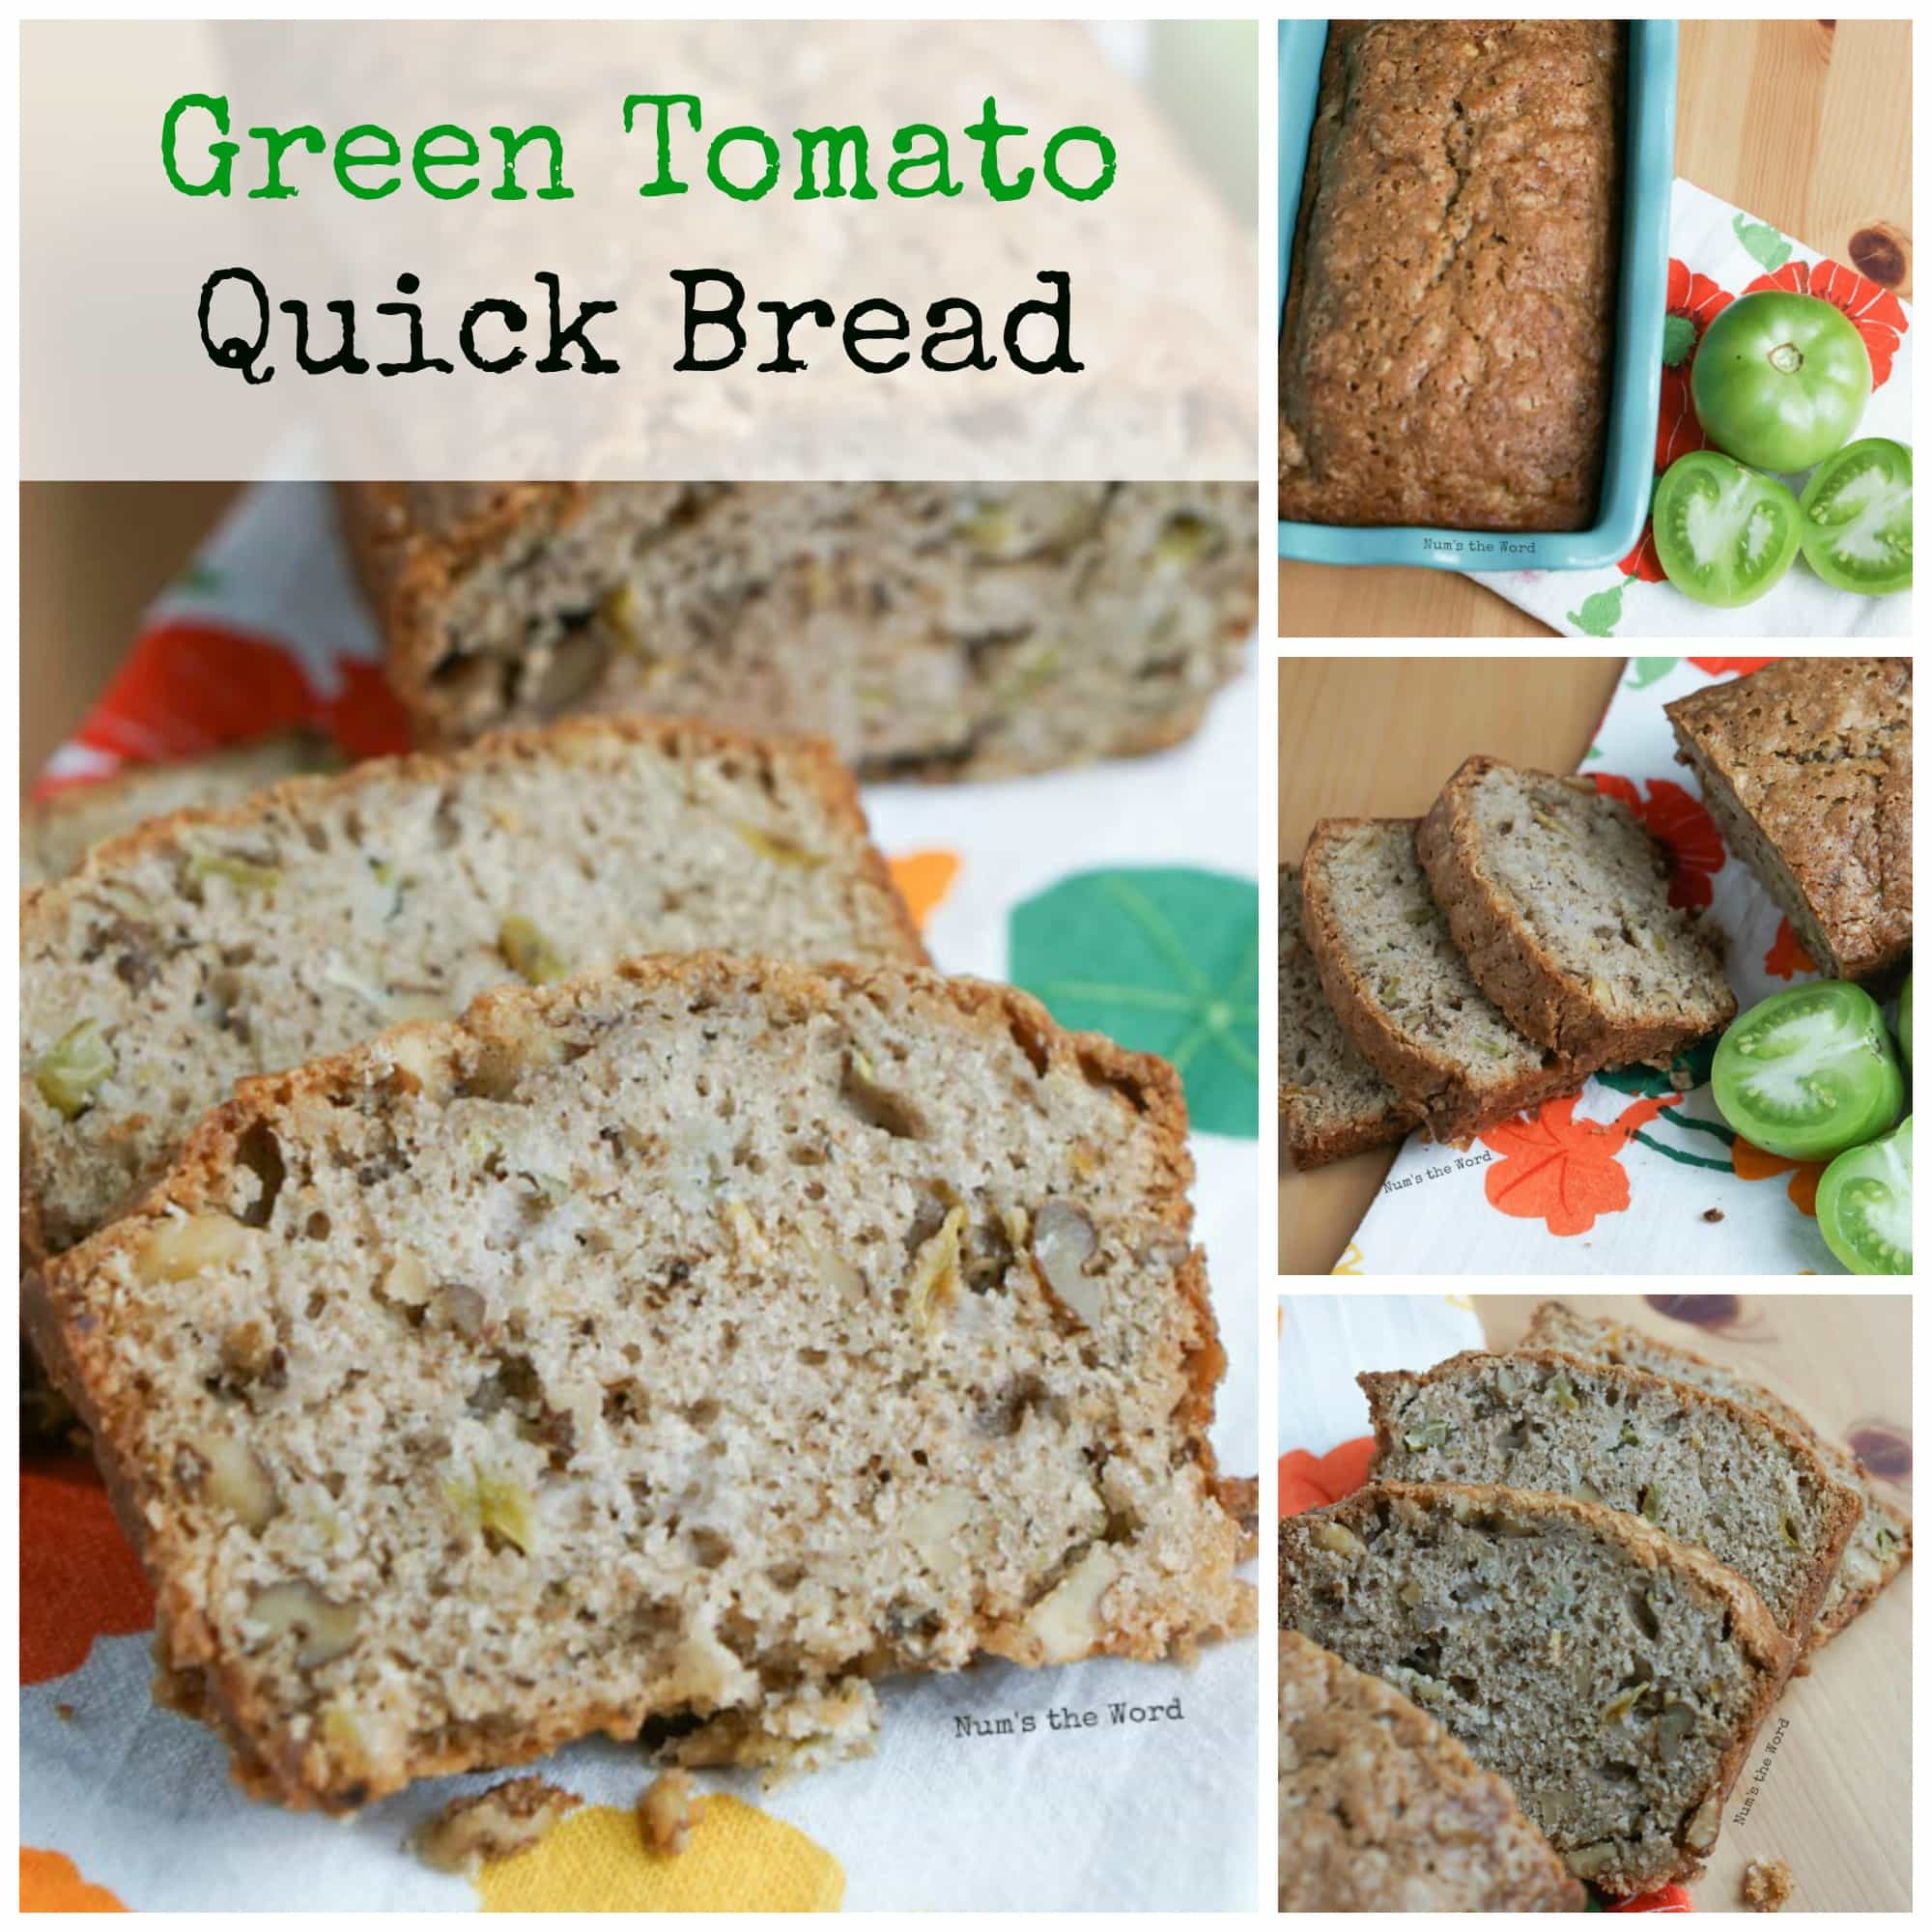 Green Tomato Quick Bread